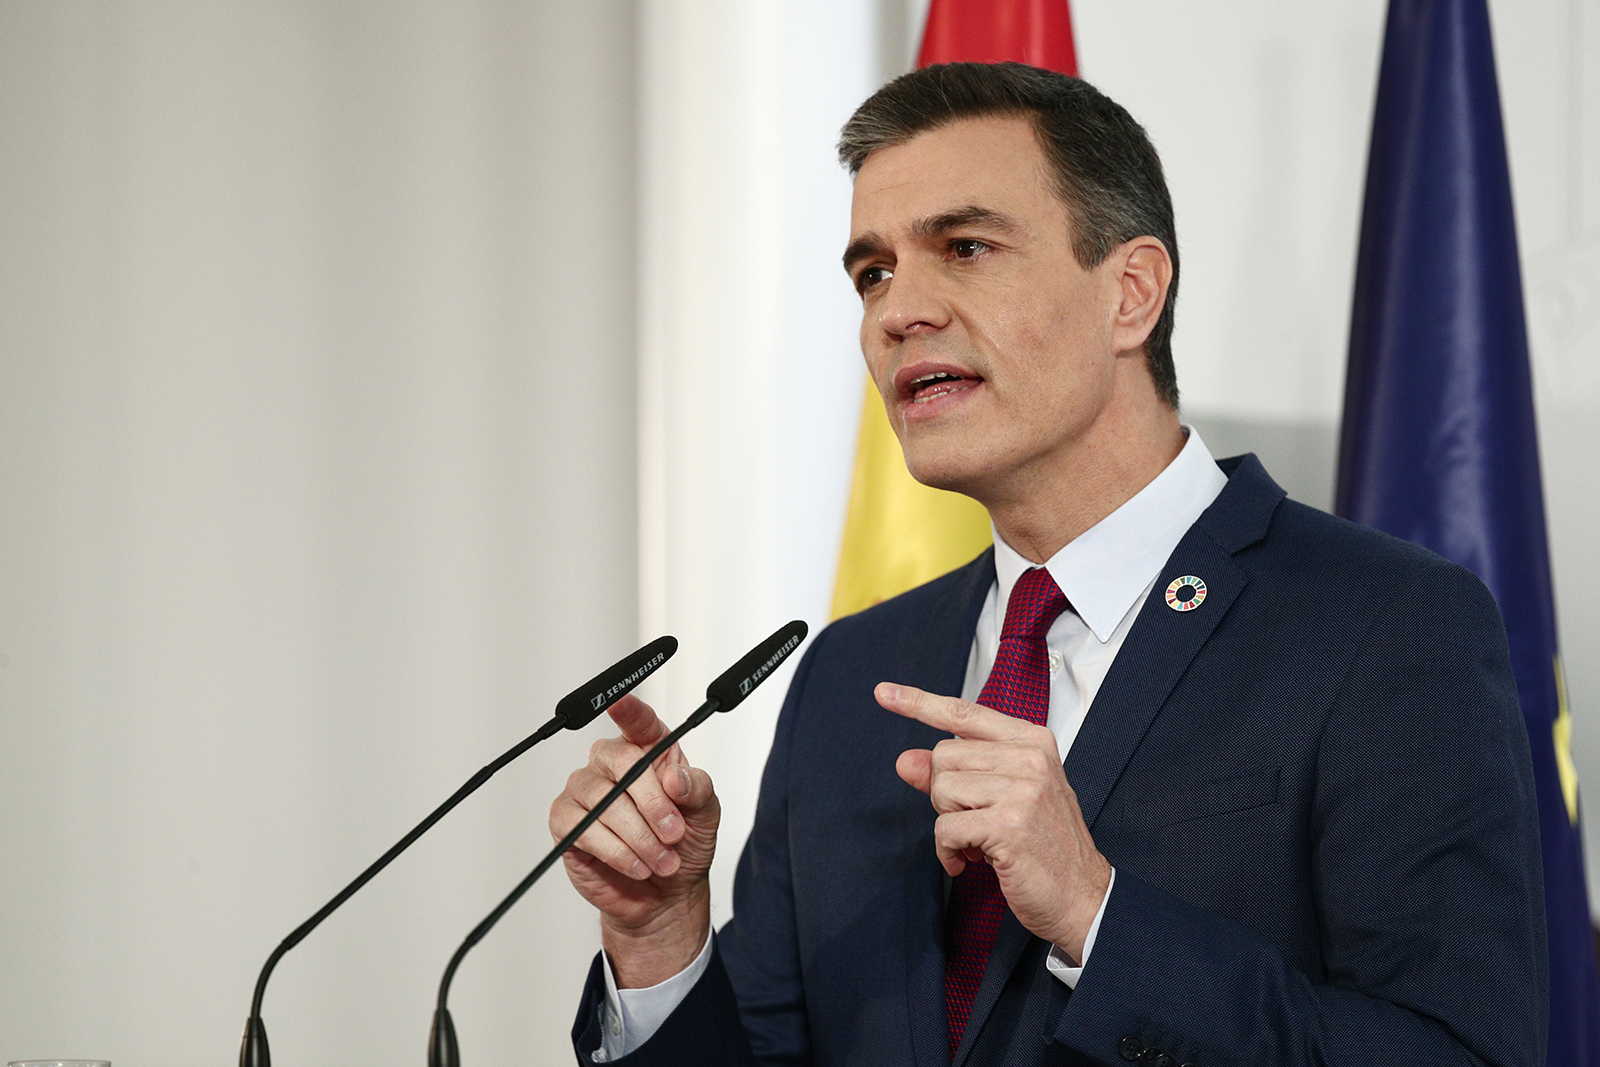 Spain's Prime Minister Pedro Sanchez speaks during a press conference in Madrid, on December 28.